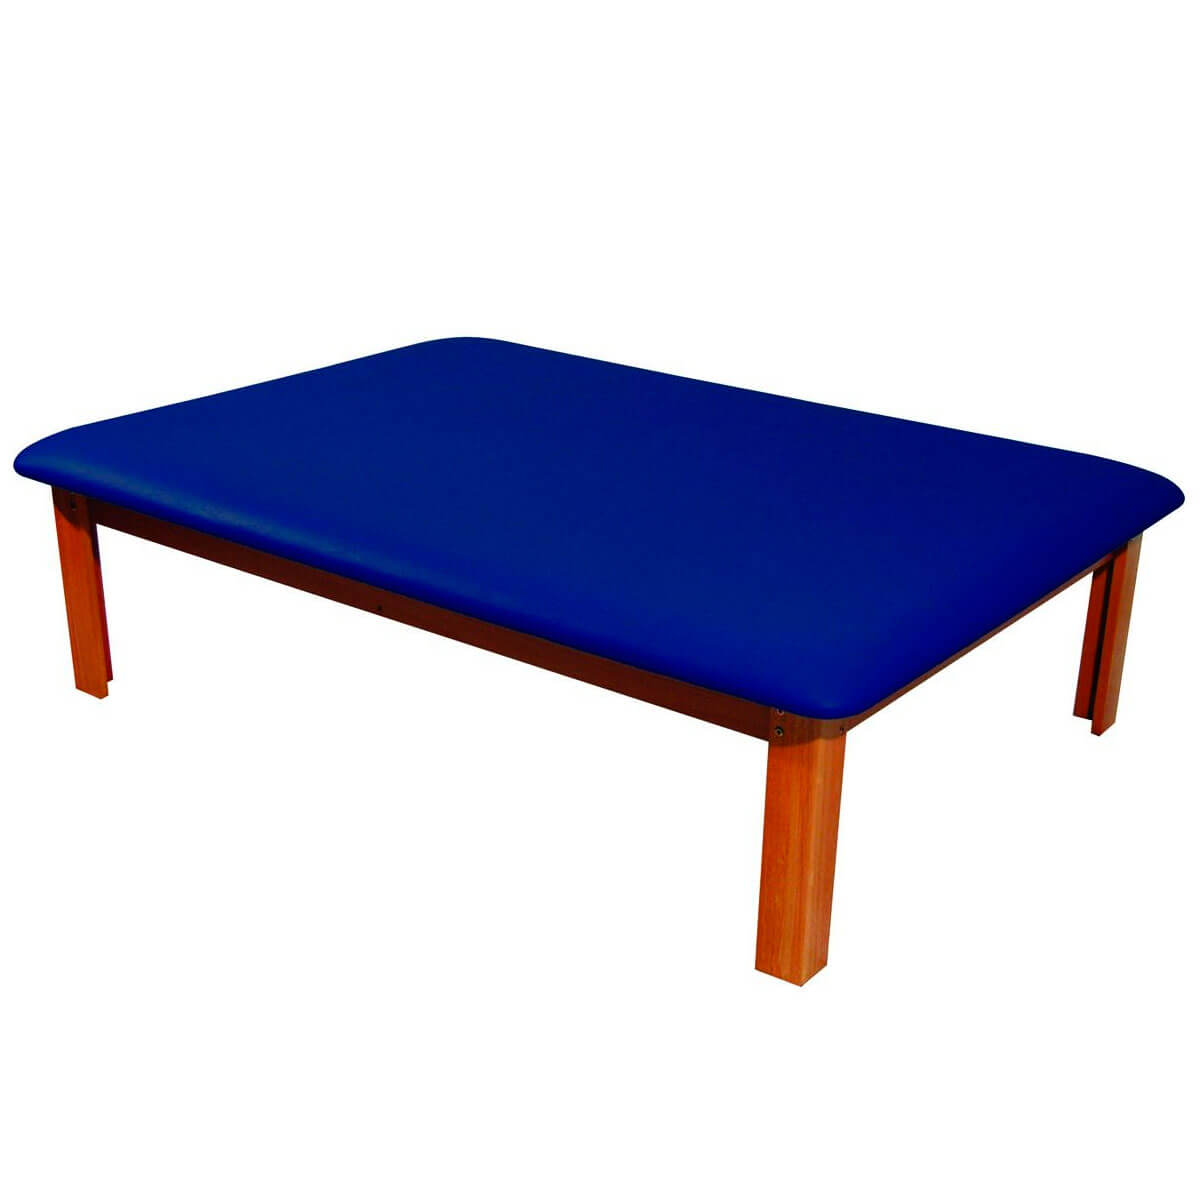 3B Scientific Mat Platform Table 4 1/2 x 6 ft blue